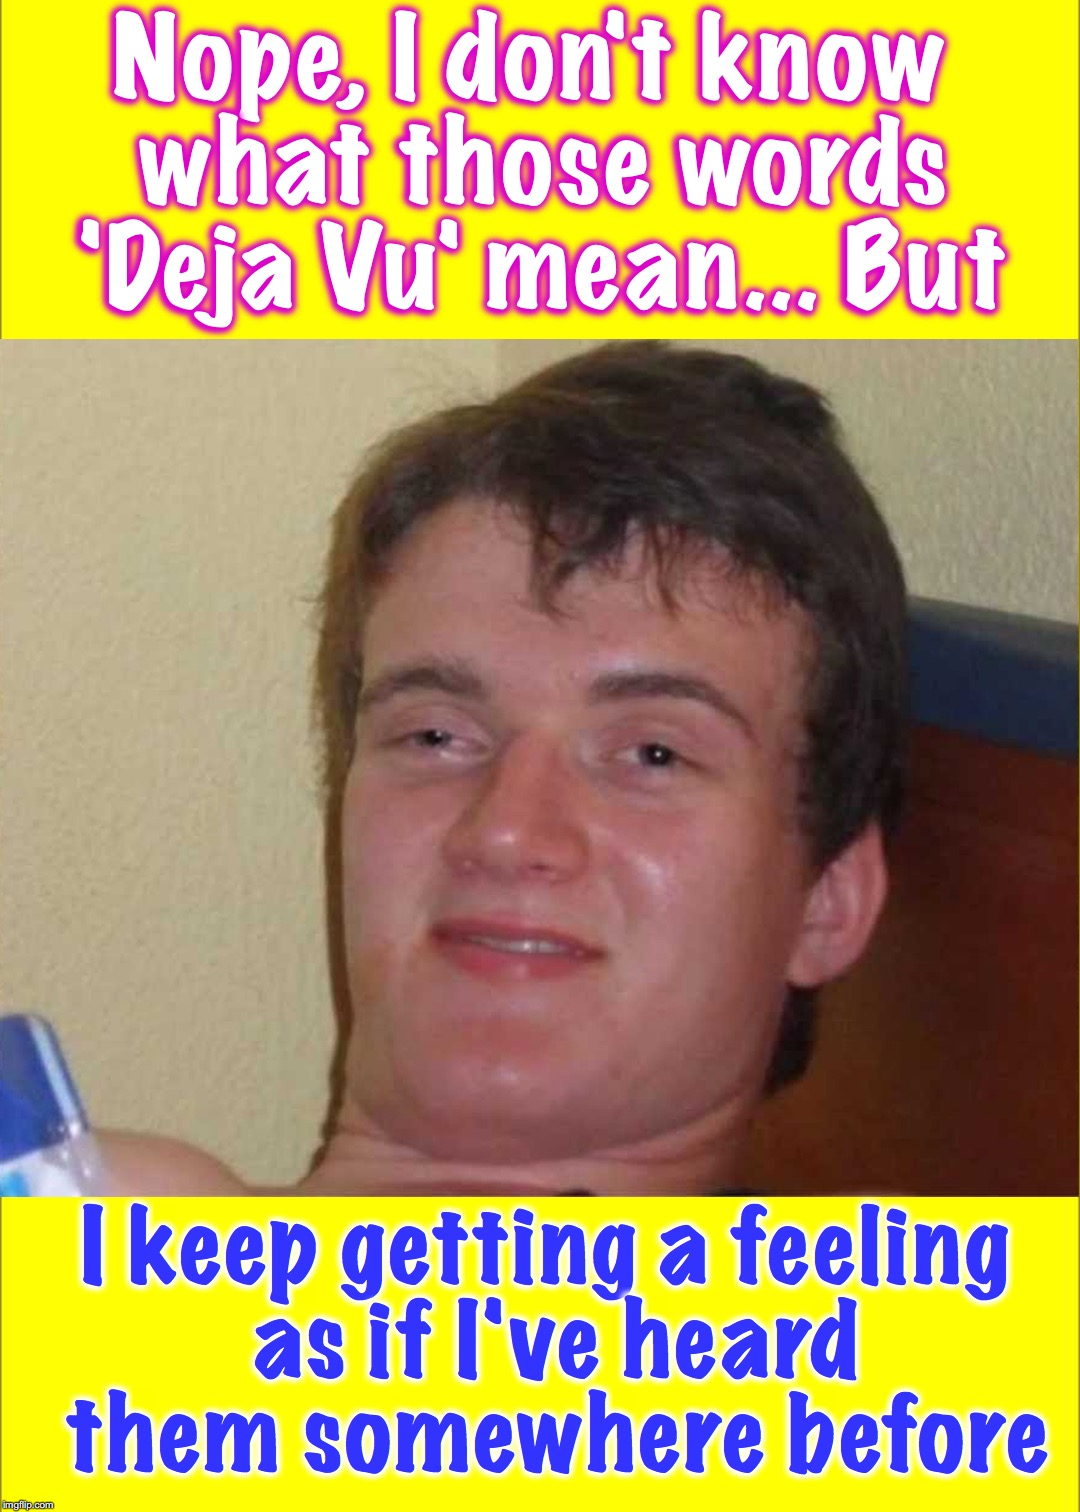 Nope, I don't know what those words 'Deja Vu' mean... But I keep getting a feeling as if I've heard them somewhere before | image tagged in 10 guy,deja vu | made w/ Imgflip meme maker